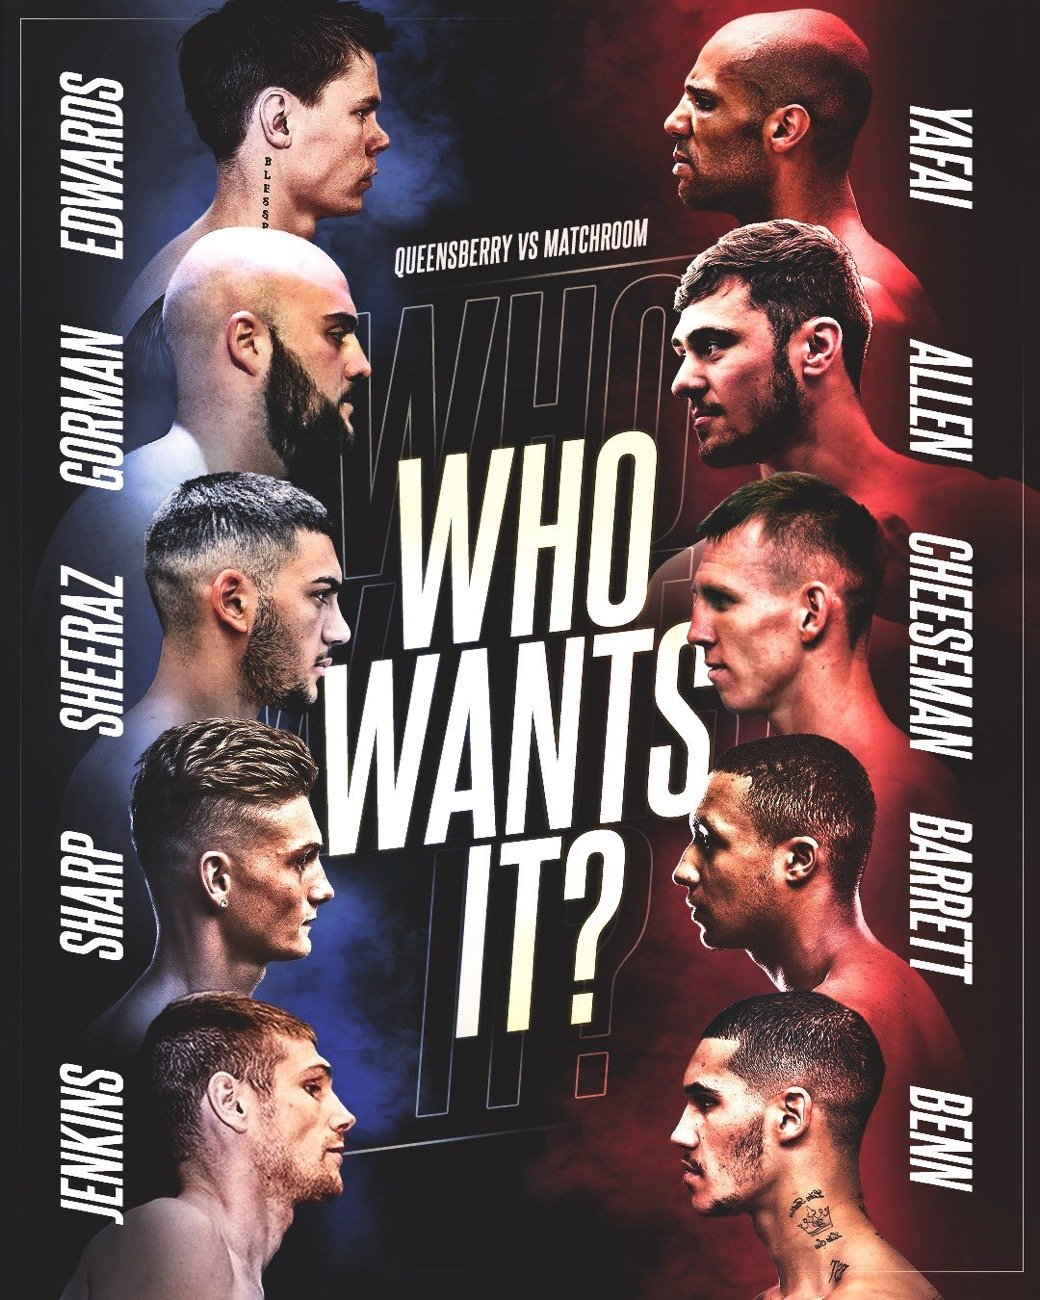 Frank Warren - Frank Warren: WITH SPORT ON the whole creeping sluggishly out of enforced hibernation and attempting to establish a foothold in the world of the so-called new normal, how about lighting the touch paper and really bringing British boxing back with a bang?